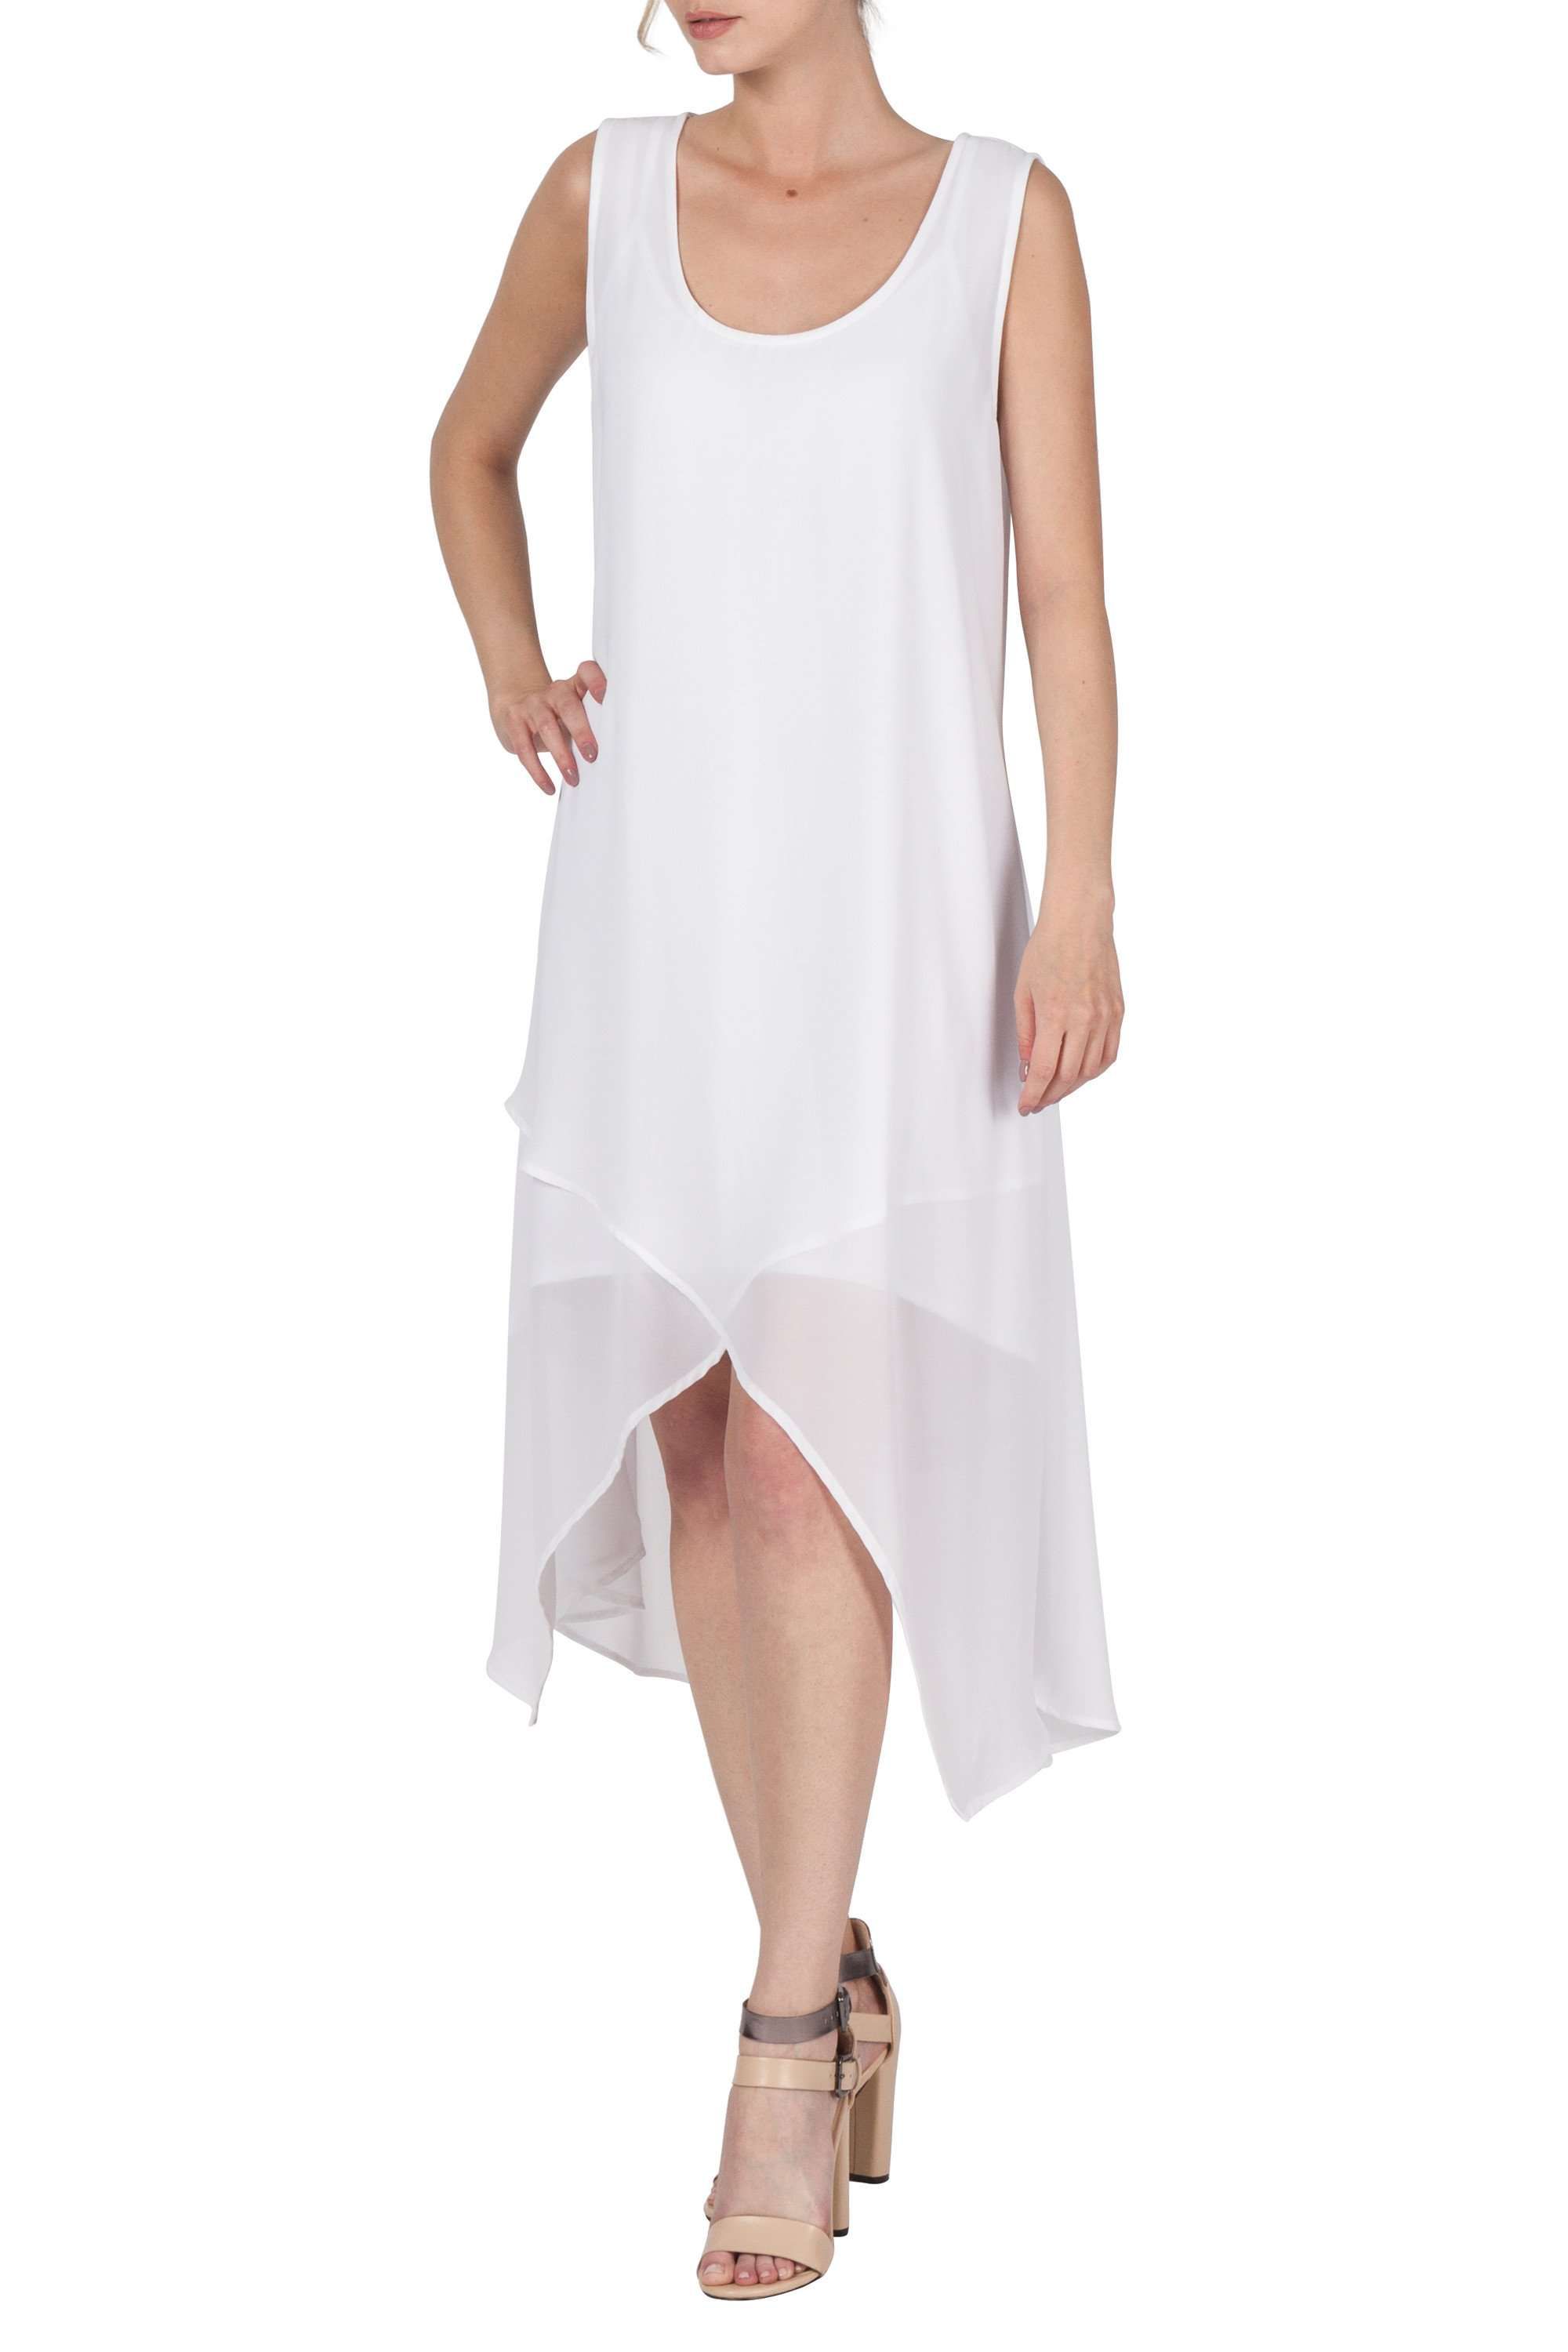 Dress White Chiffon Features 2Pc Slip and Hanky Hem Dress on Sale Now - Yvonne Marie